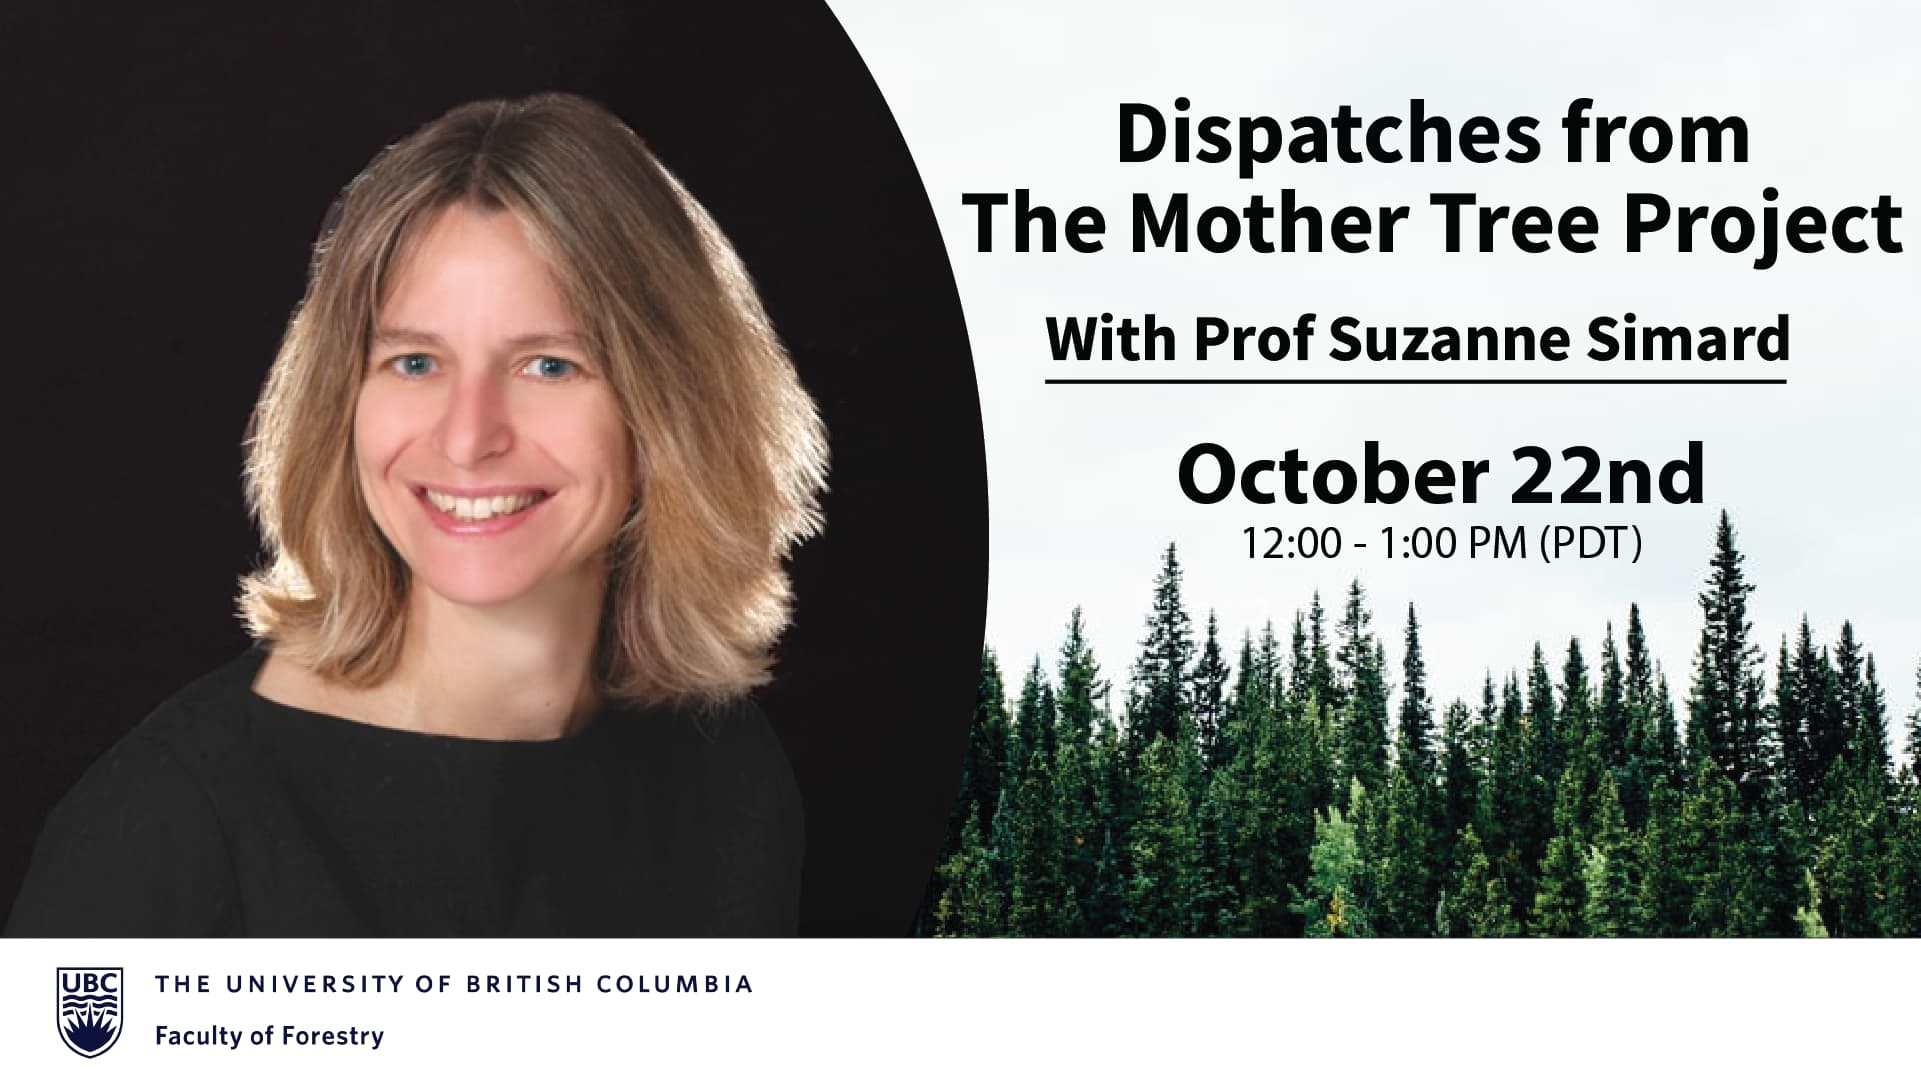 Webinar: Dispatches from The Mother Tree Project